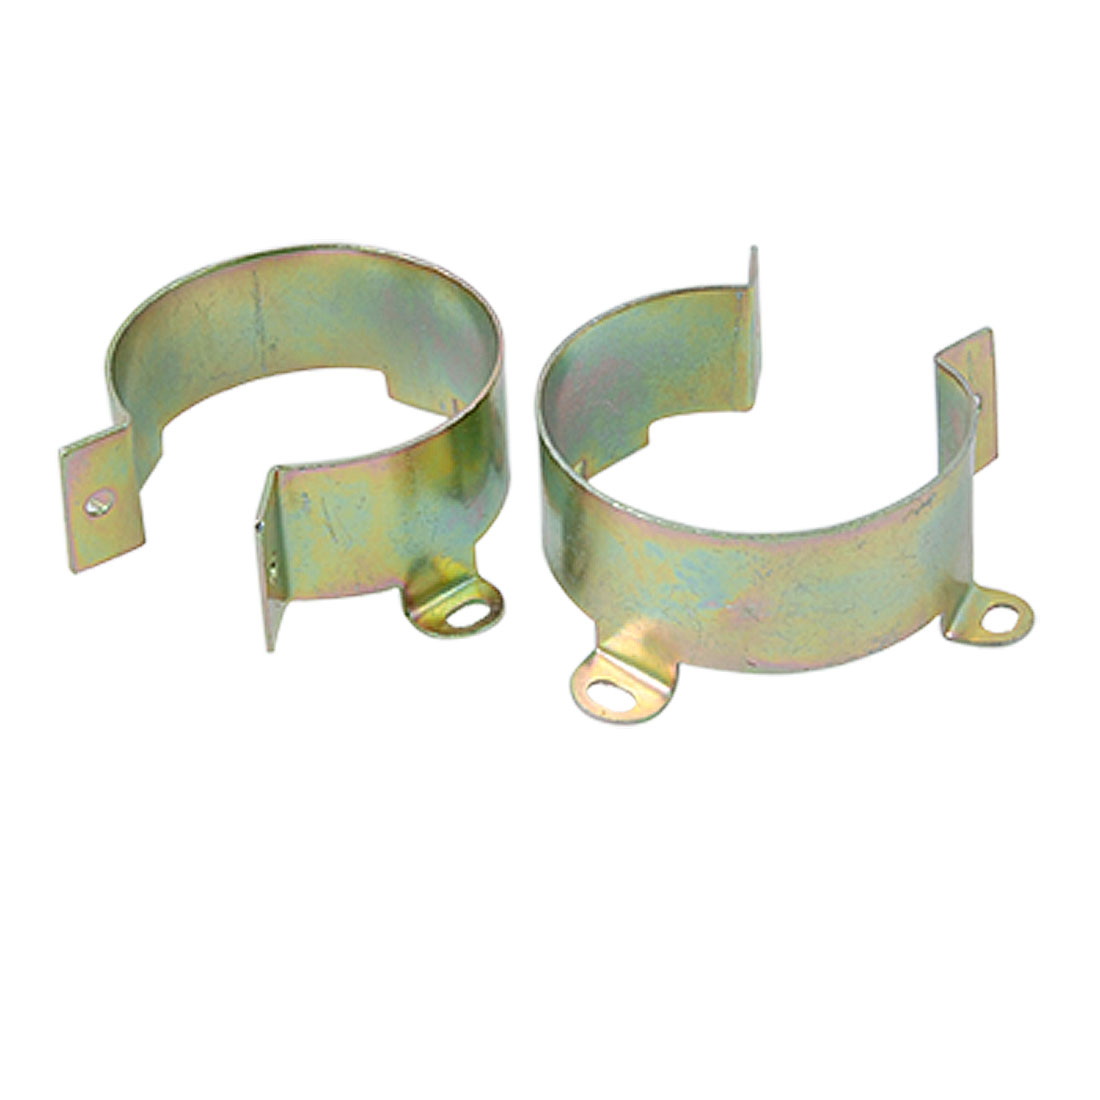 2 Pcs 55mm Inner Diameter Capacitor Metal Clamps Holder Mount Brackets